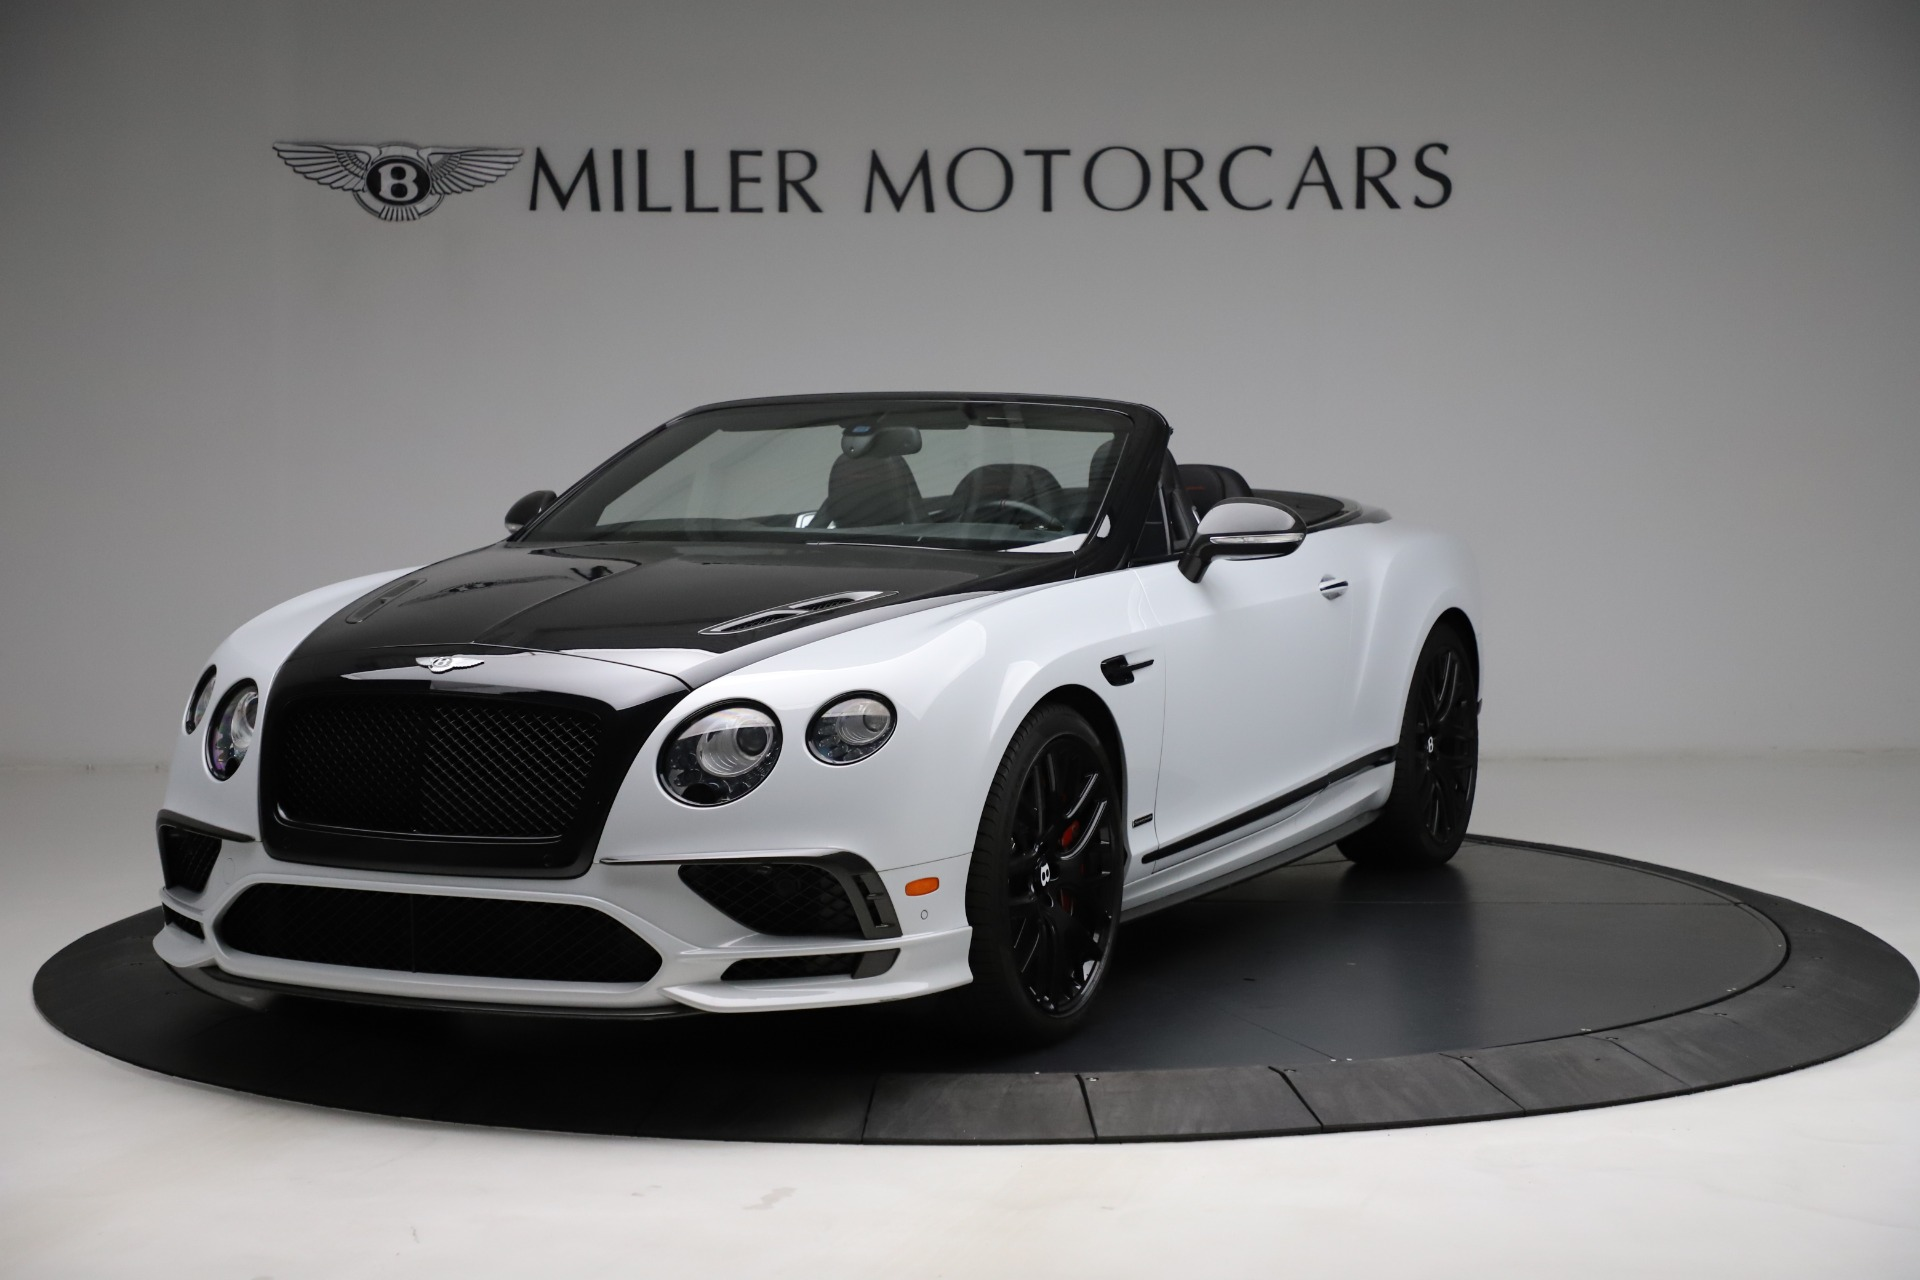 Used 2018 Bentley Continental GT Supersports for sale $209,900 at Bentley Greenwich in Greenwich CT 06830 1